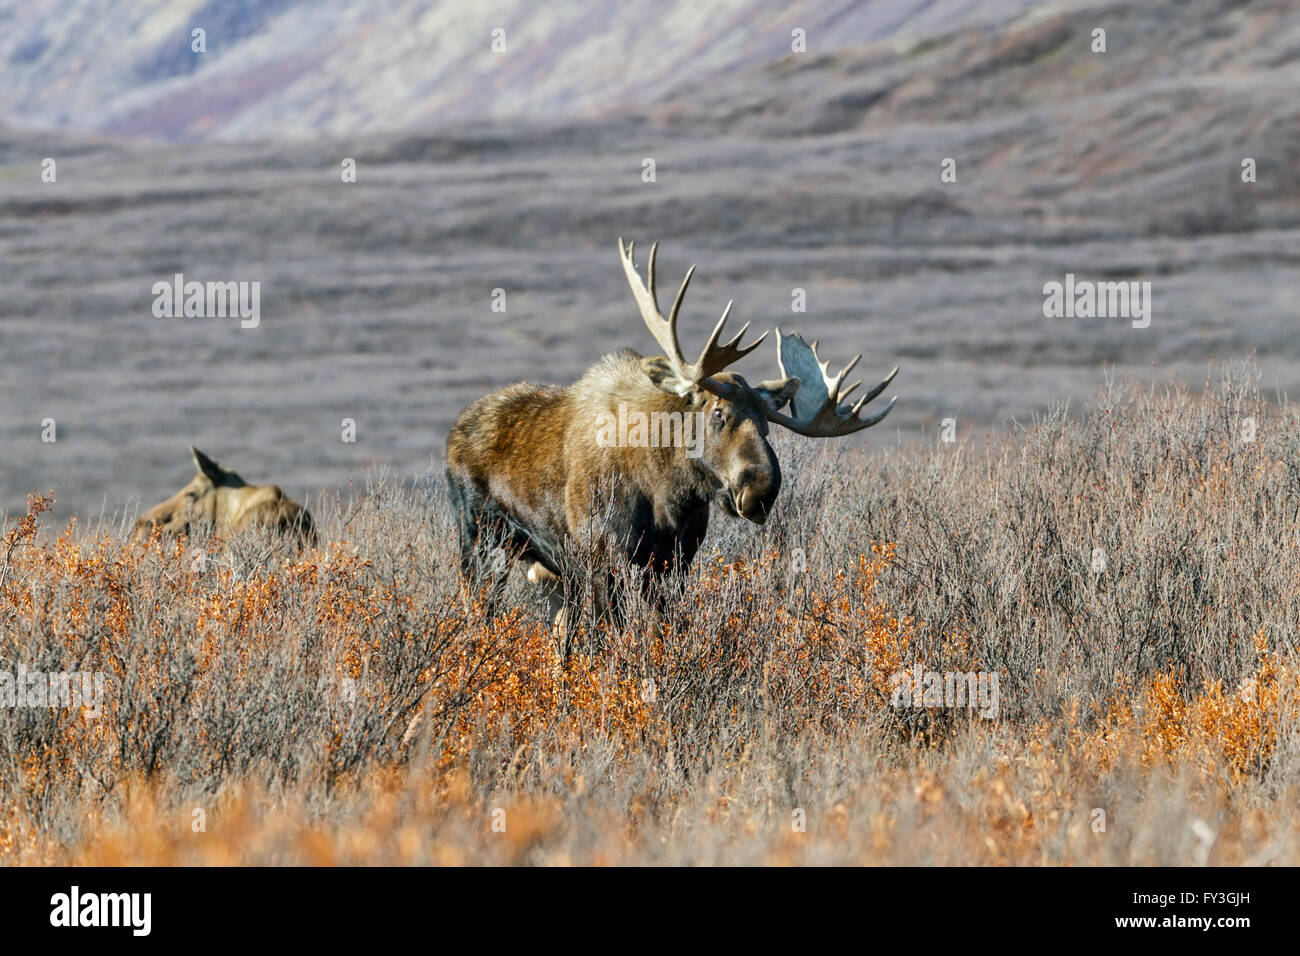 Bull moose feeding in the remote tundra in the Alaska Range mountains during the autumn rut - Stock Image